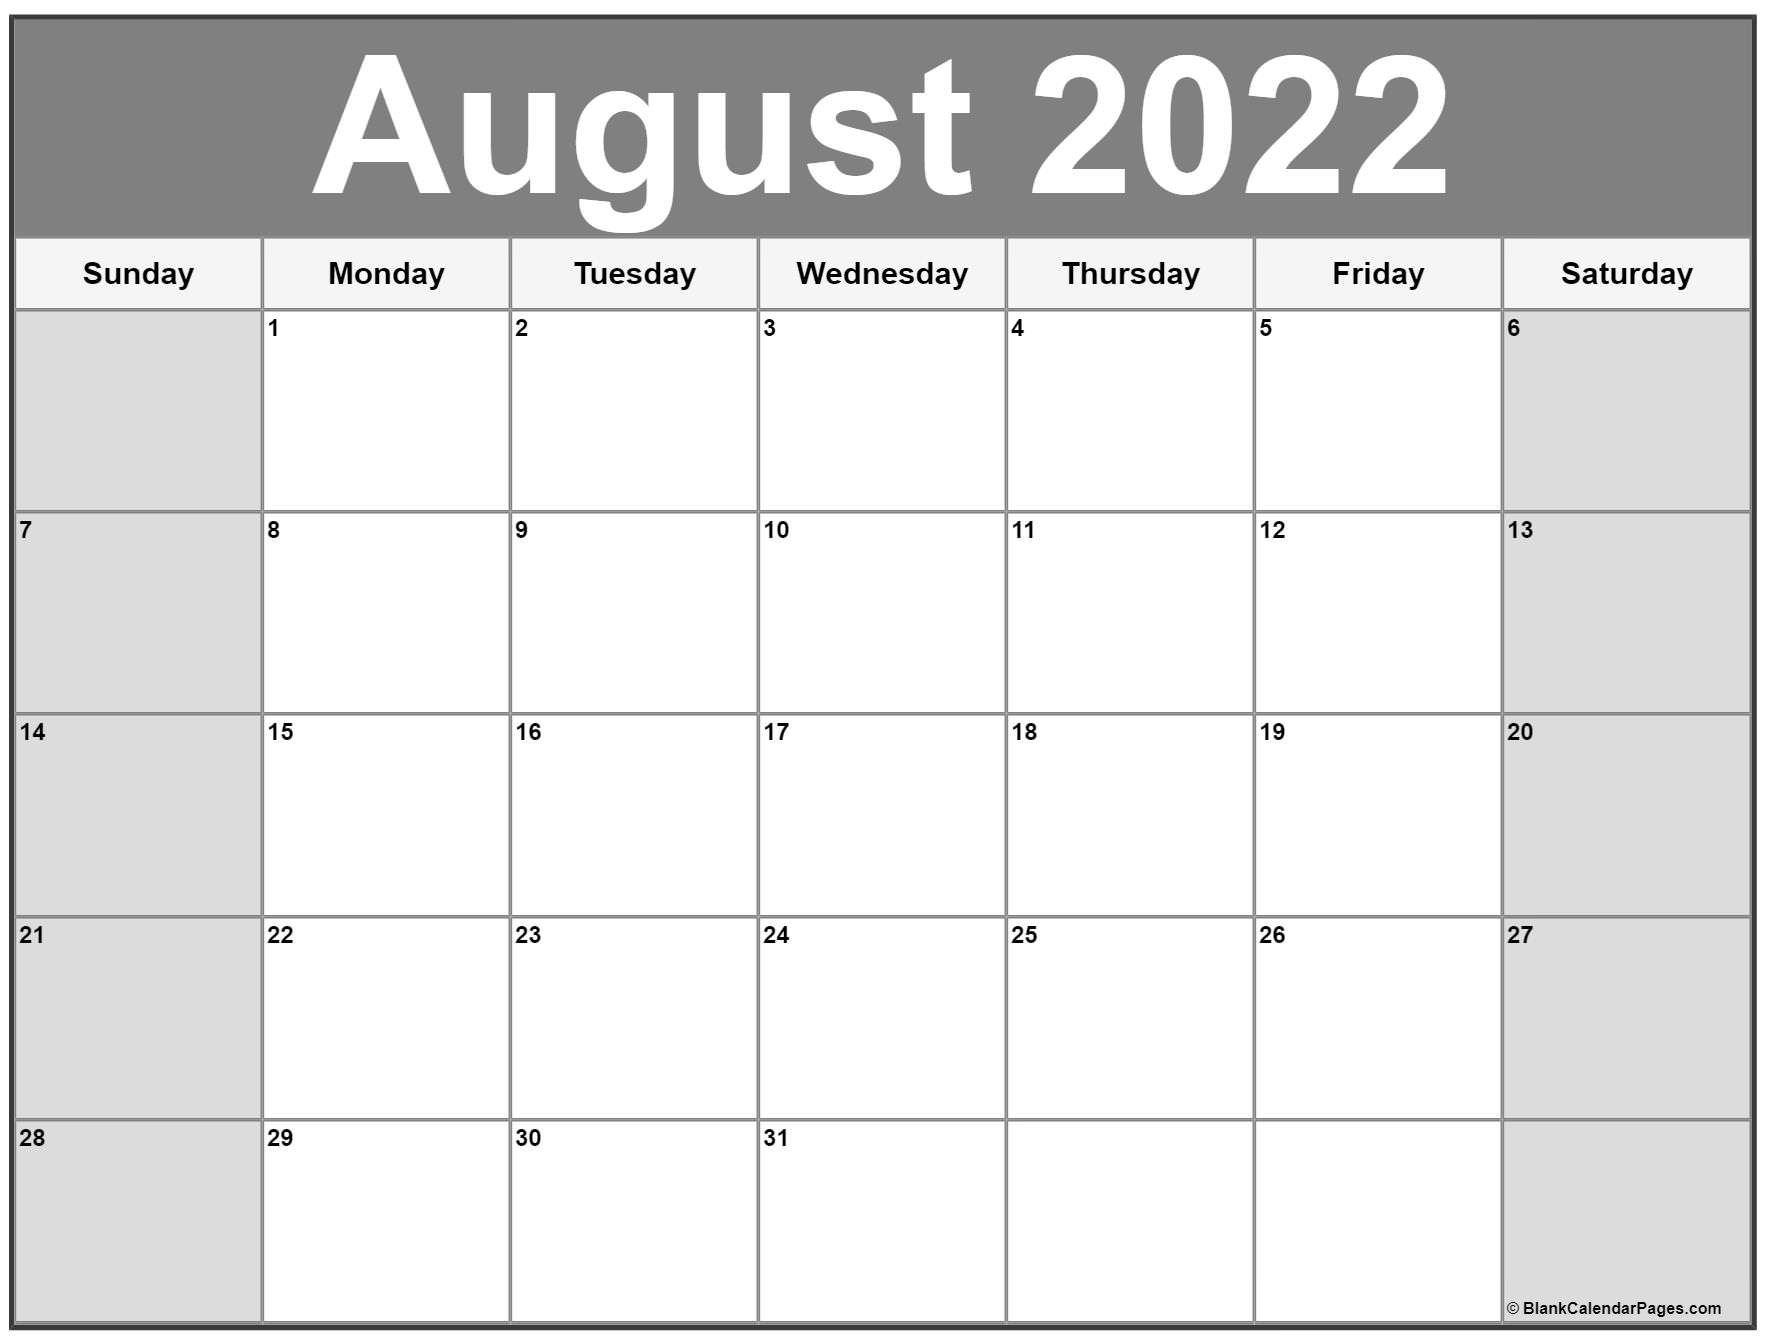 2022 free monthly calendar templates this 2022 calendar with clean bold letters and numbers can be printed in mini happy planner size, classic happy planner size, or big happy planner size. August 2022 calendar | free printable calendar templates